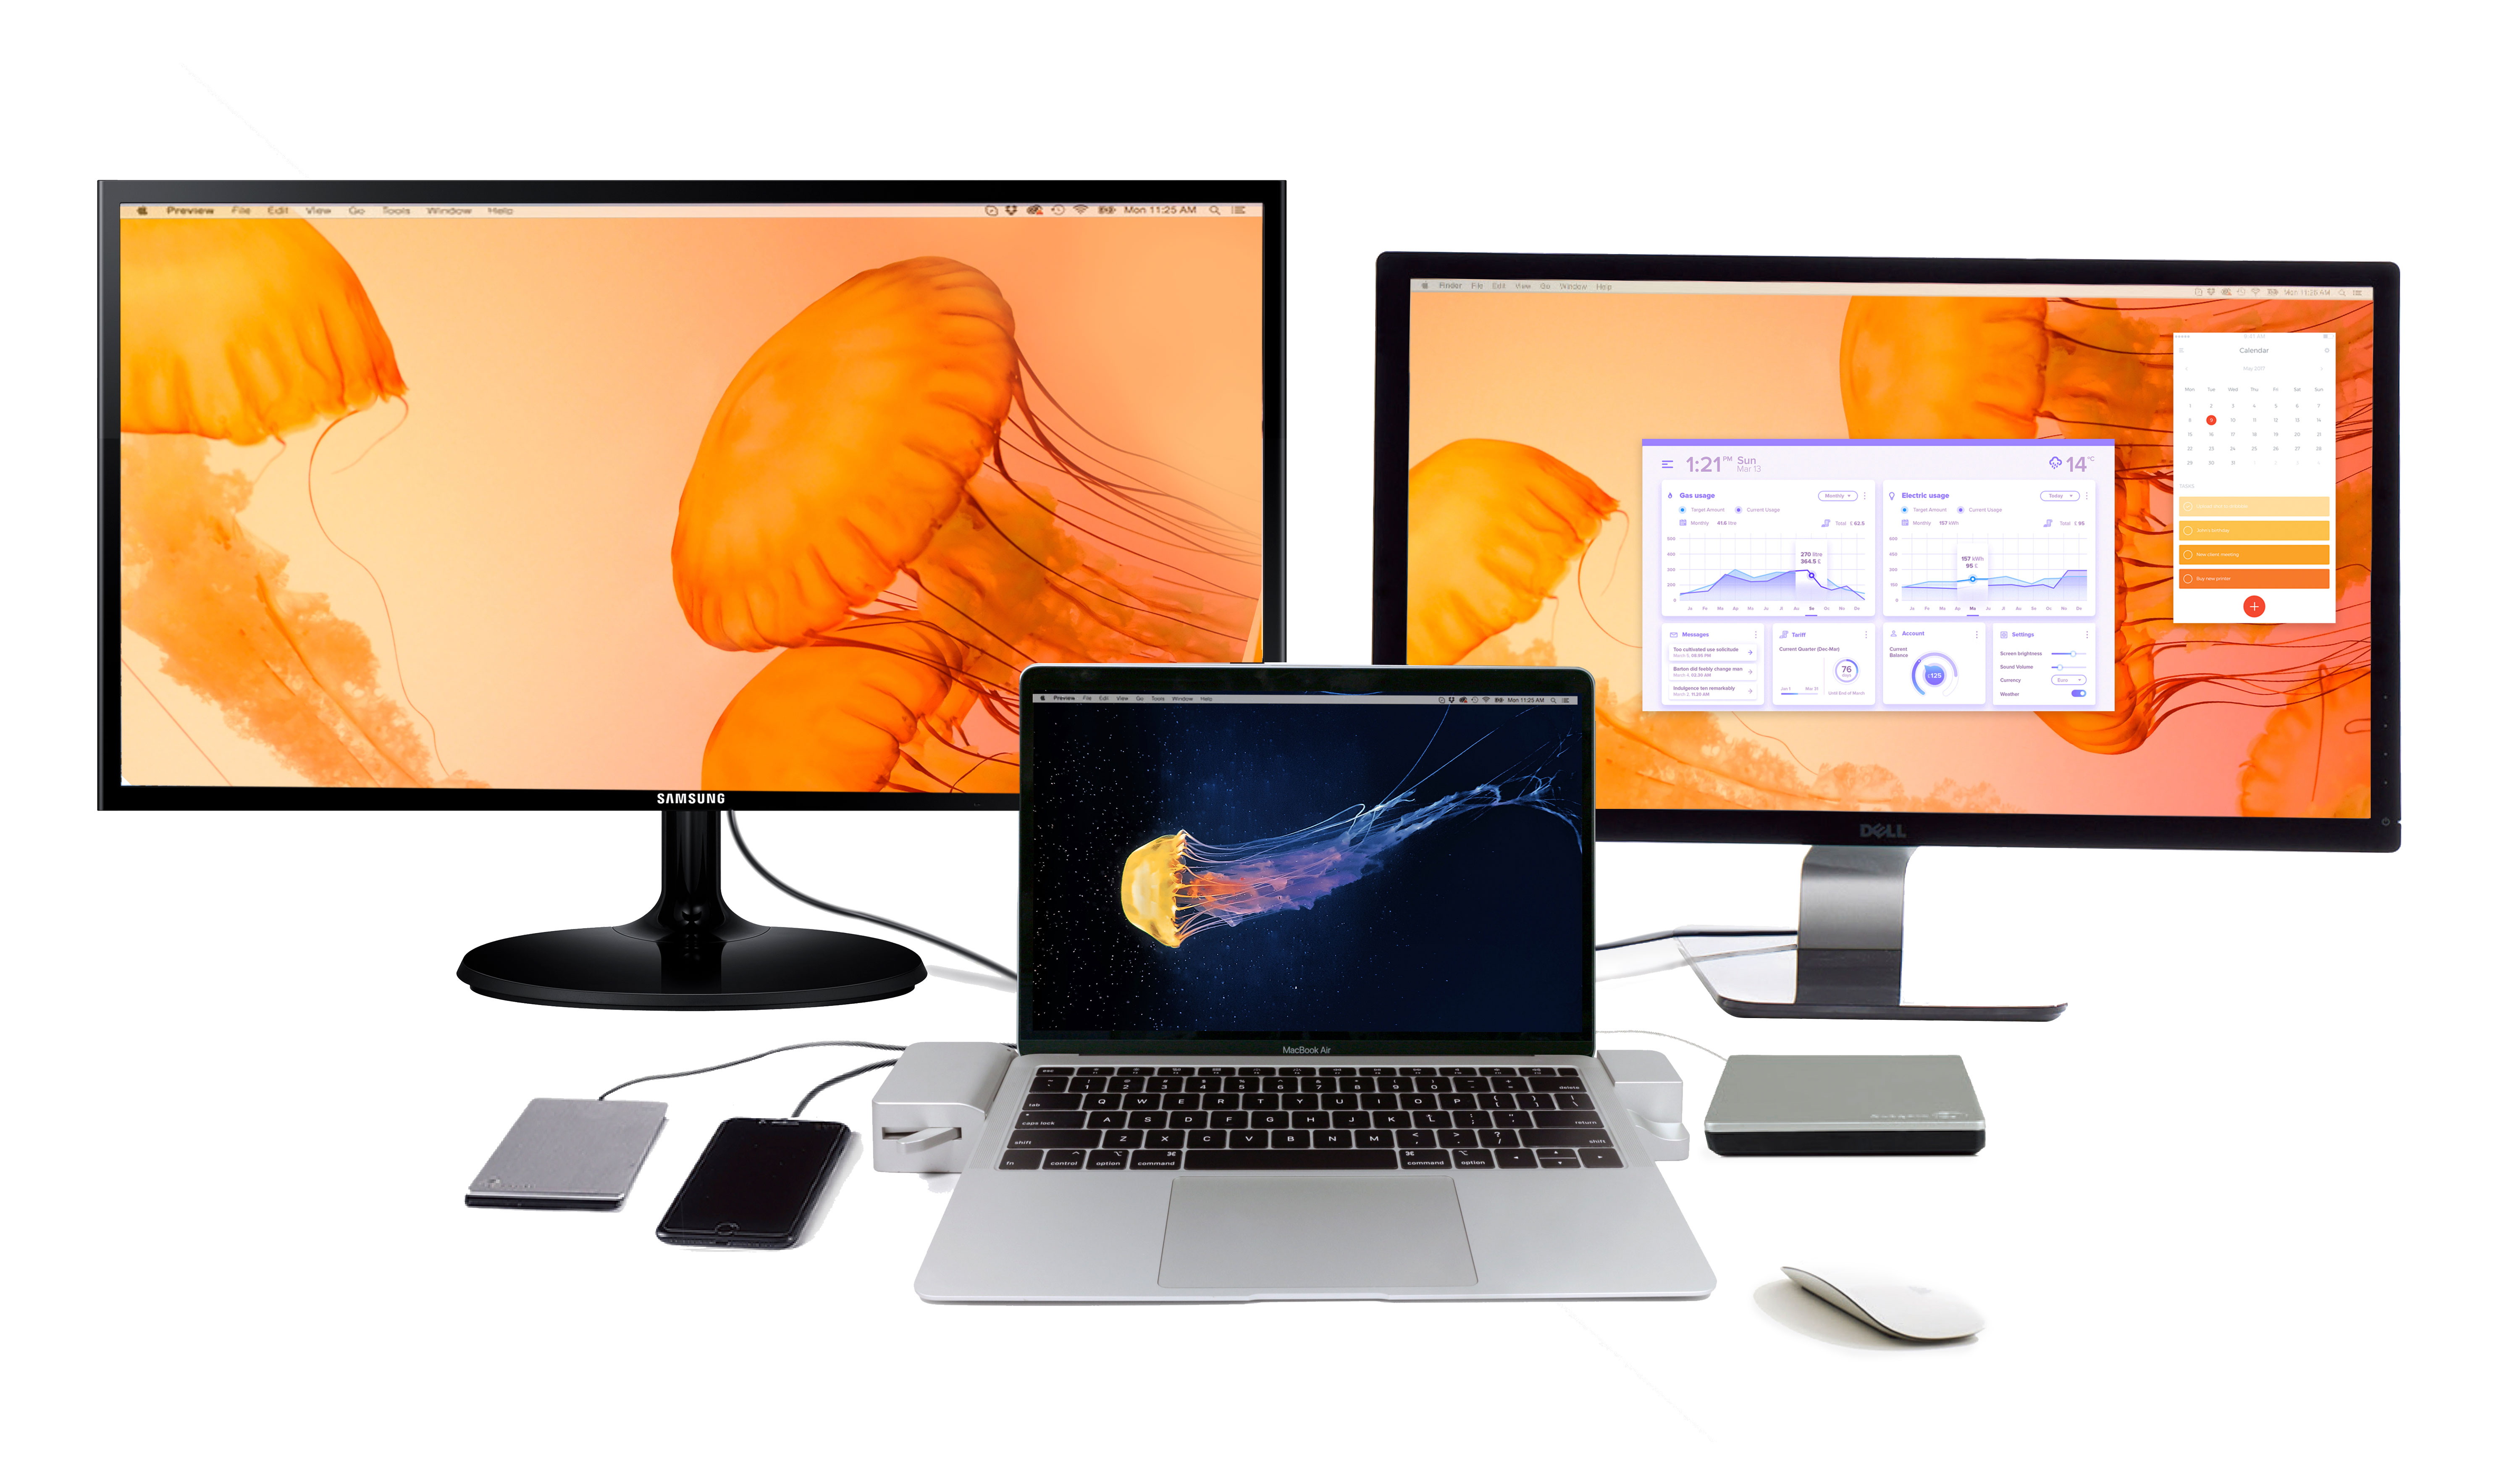 Docking Station for the 13-inch MacBook Air - Dual Monitor Docked View